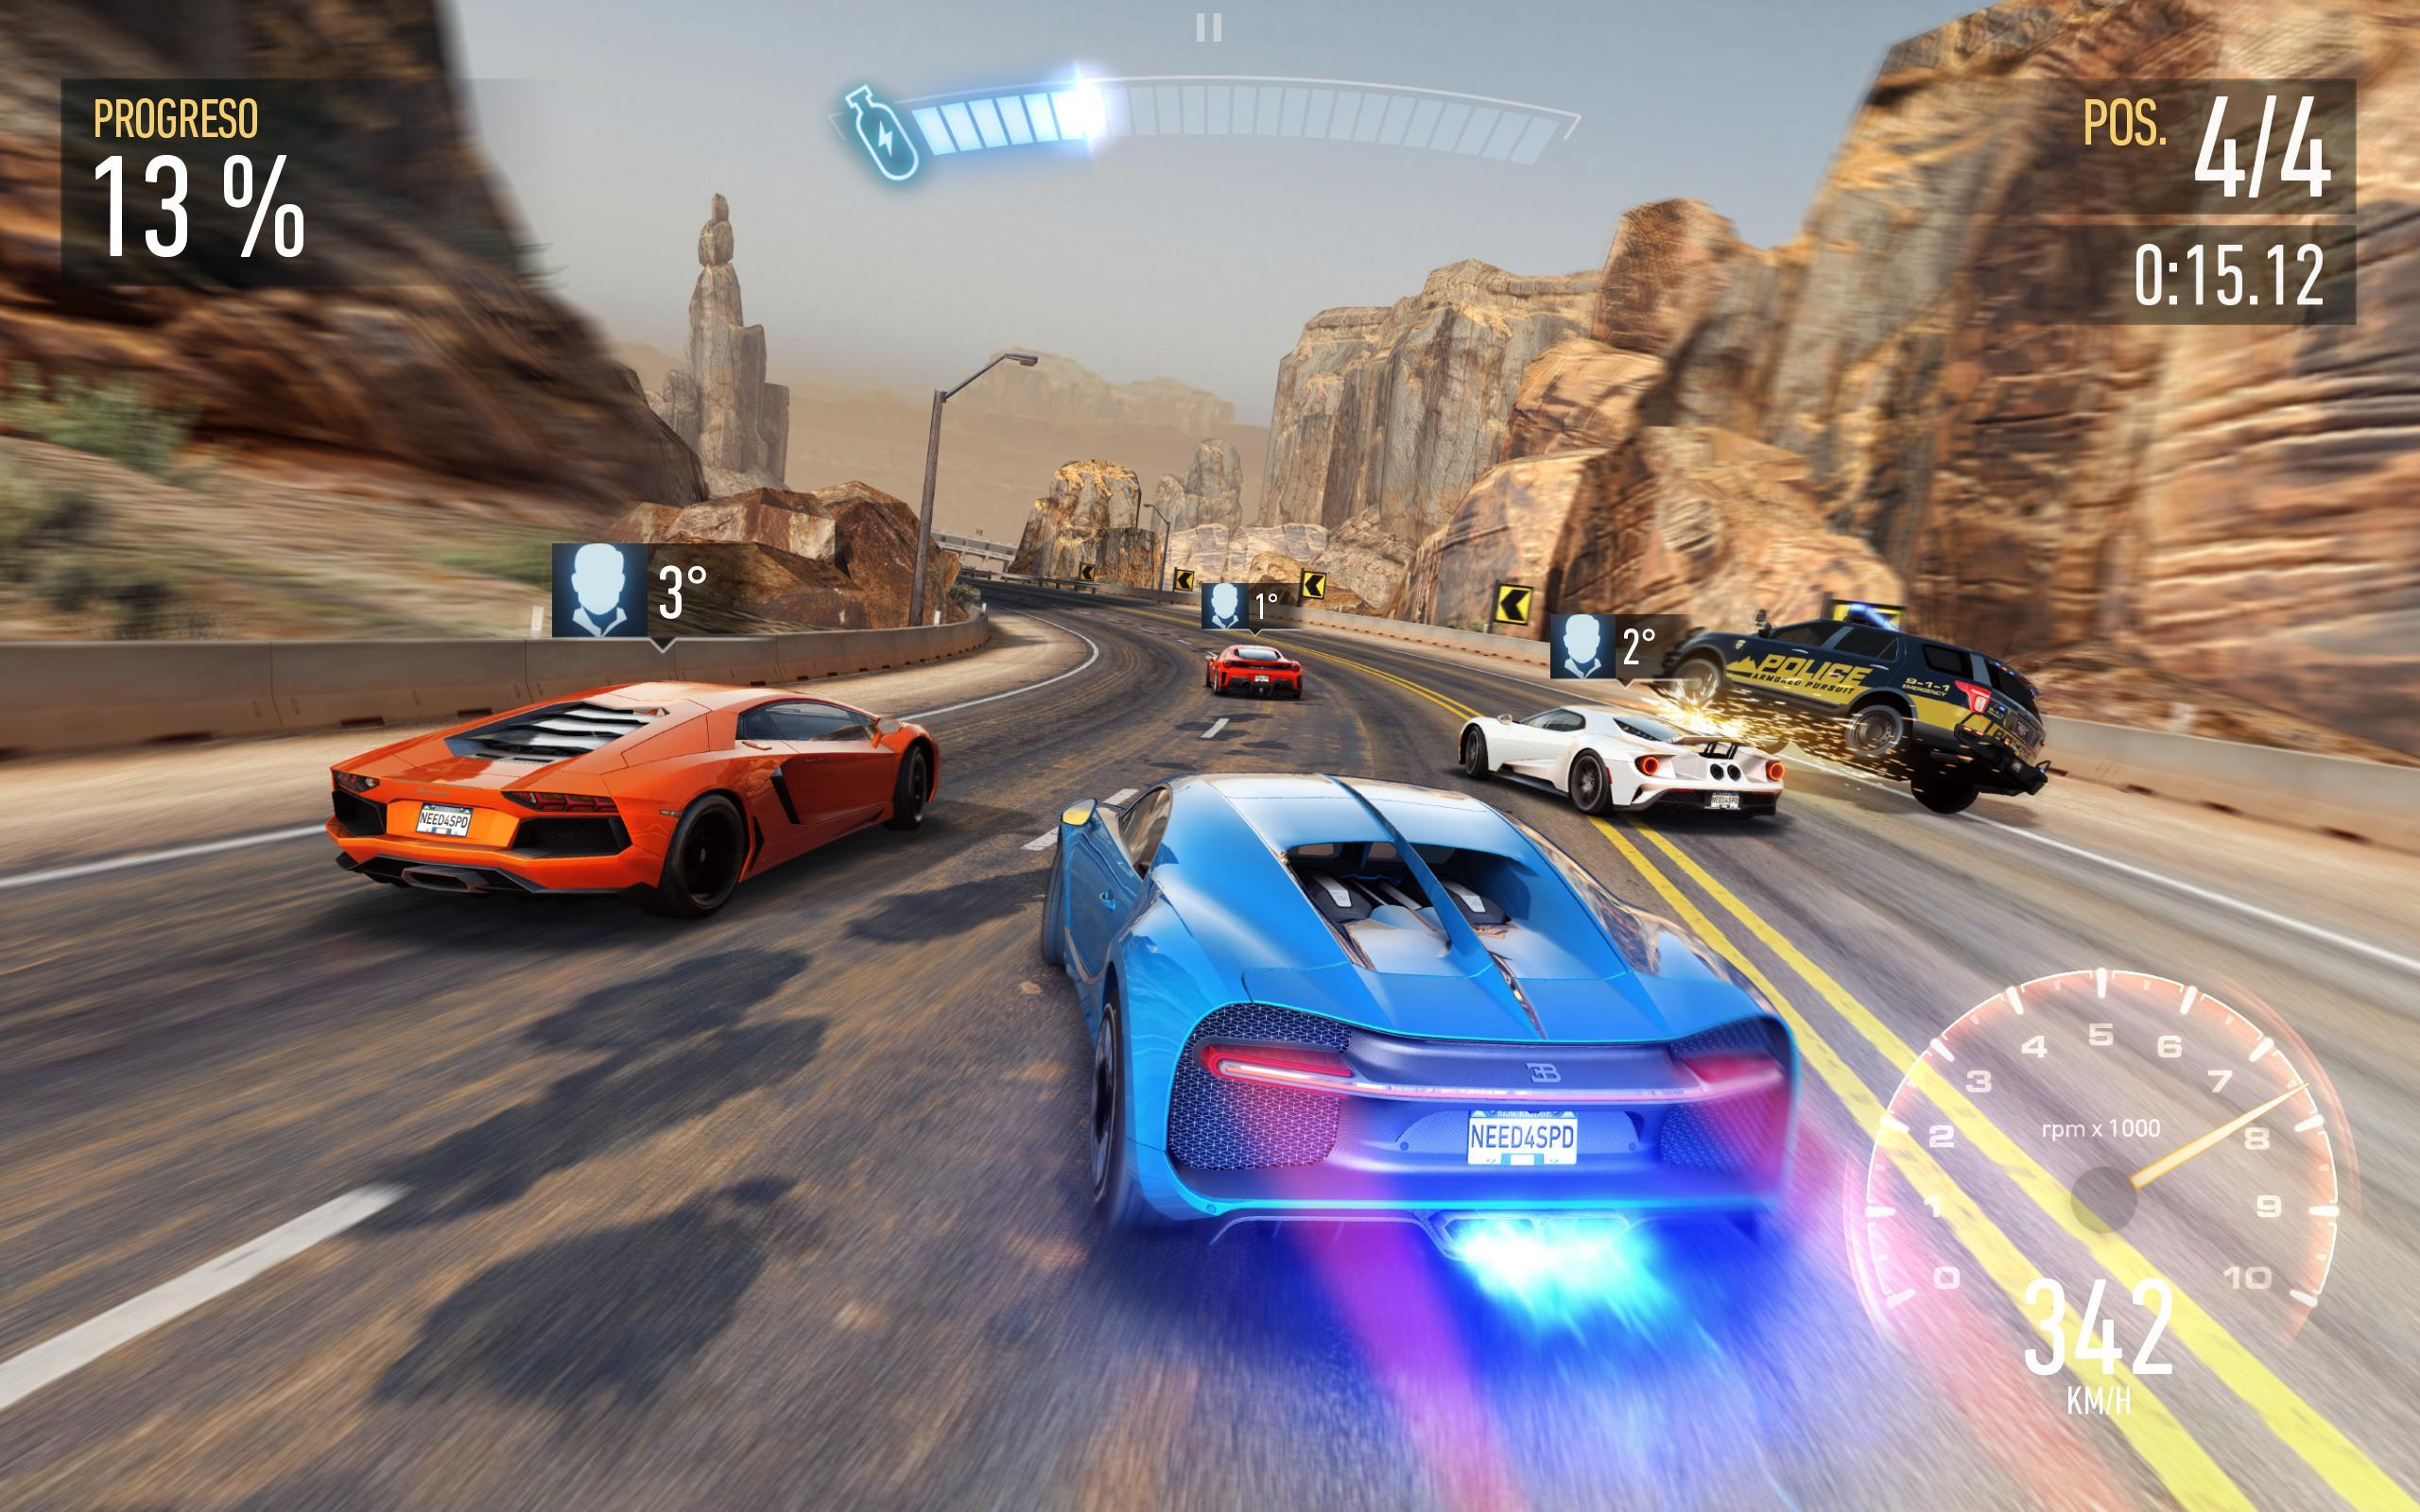 Need For Speed Nl Las Carreras For Android Apk Download - be crushed by a speeding wall vips 50 off roblox